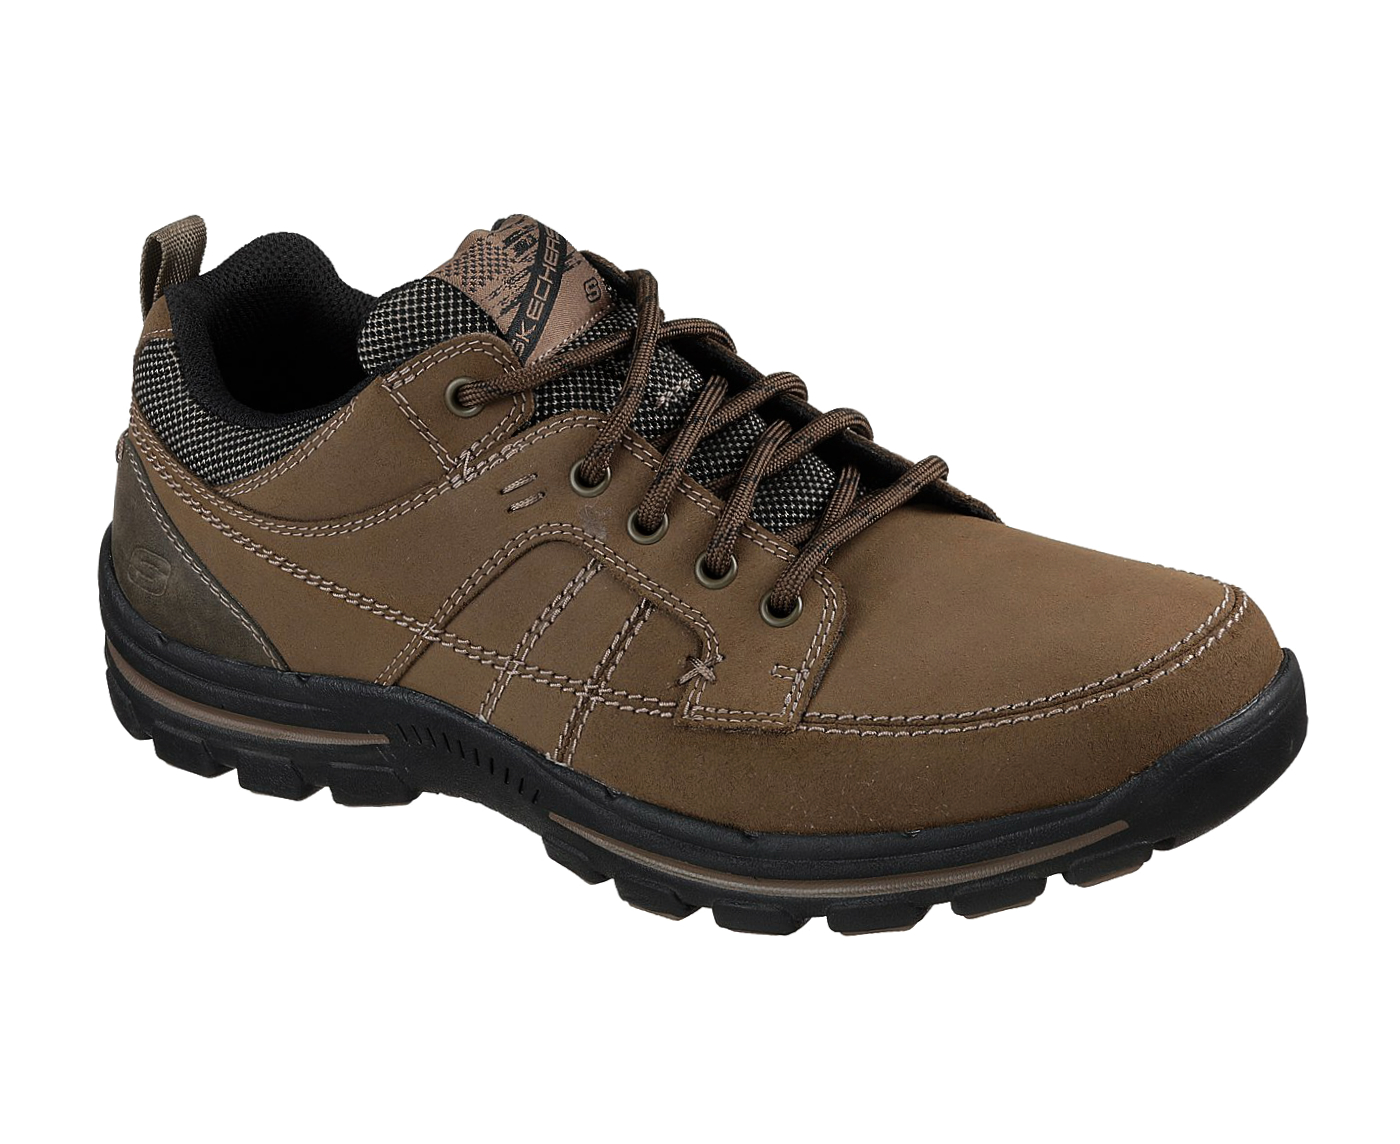 new arrival d5952 16b6b Details zu Skechers Mens Brown Relaxed Fit Braver Ralson Trainers Shoes